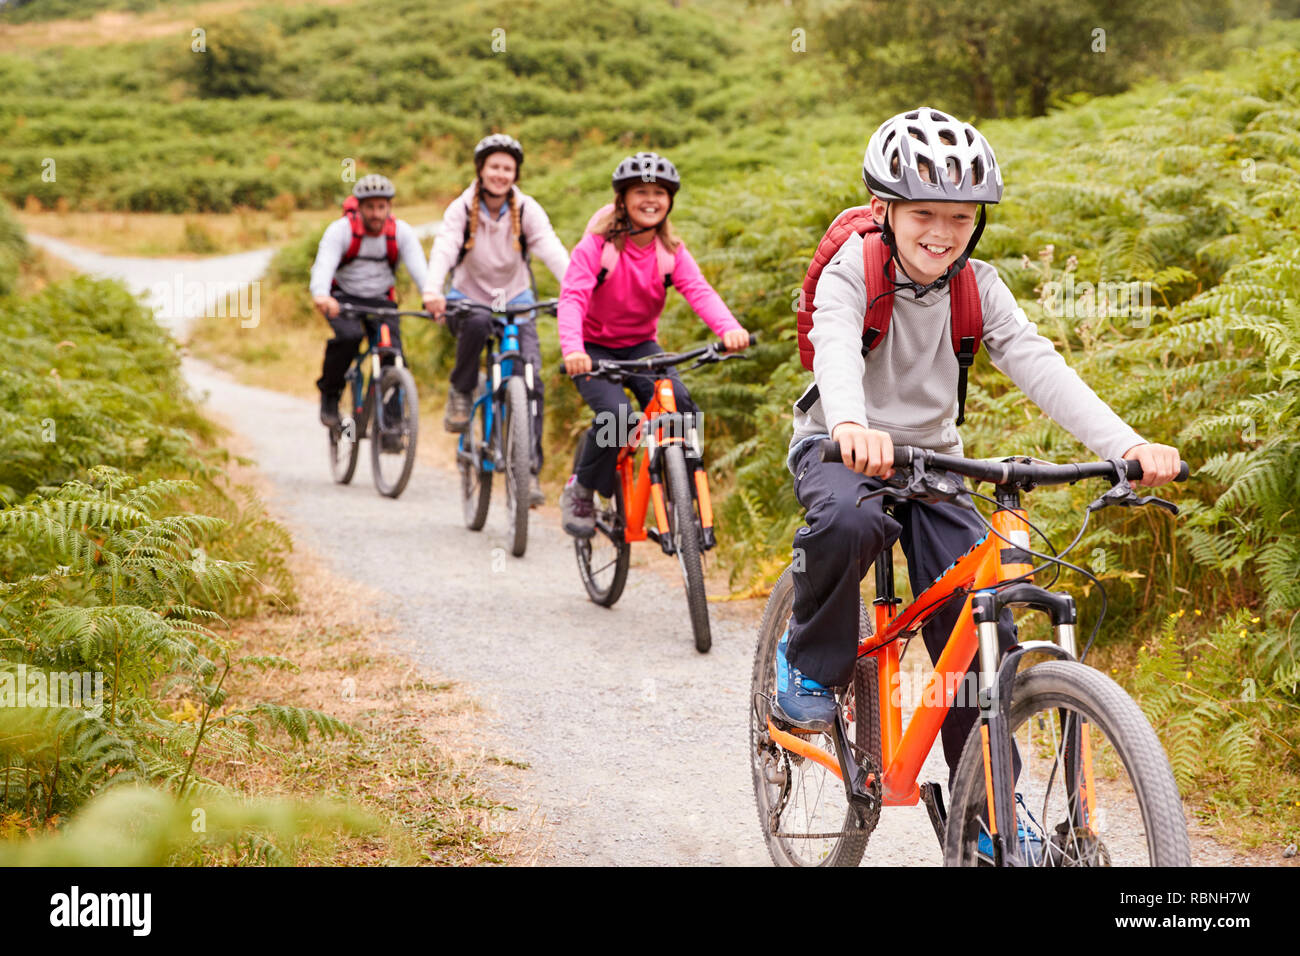 Pre-teen boy riding mountain bike with his sister and parents during a family camping trip, close up - Stock Image